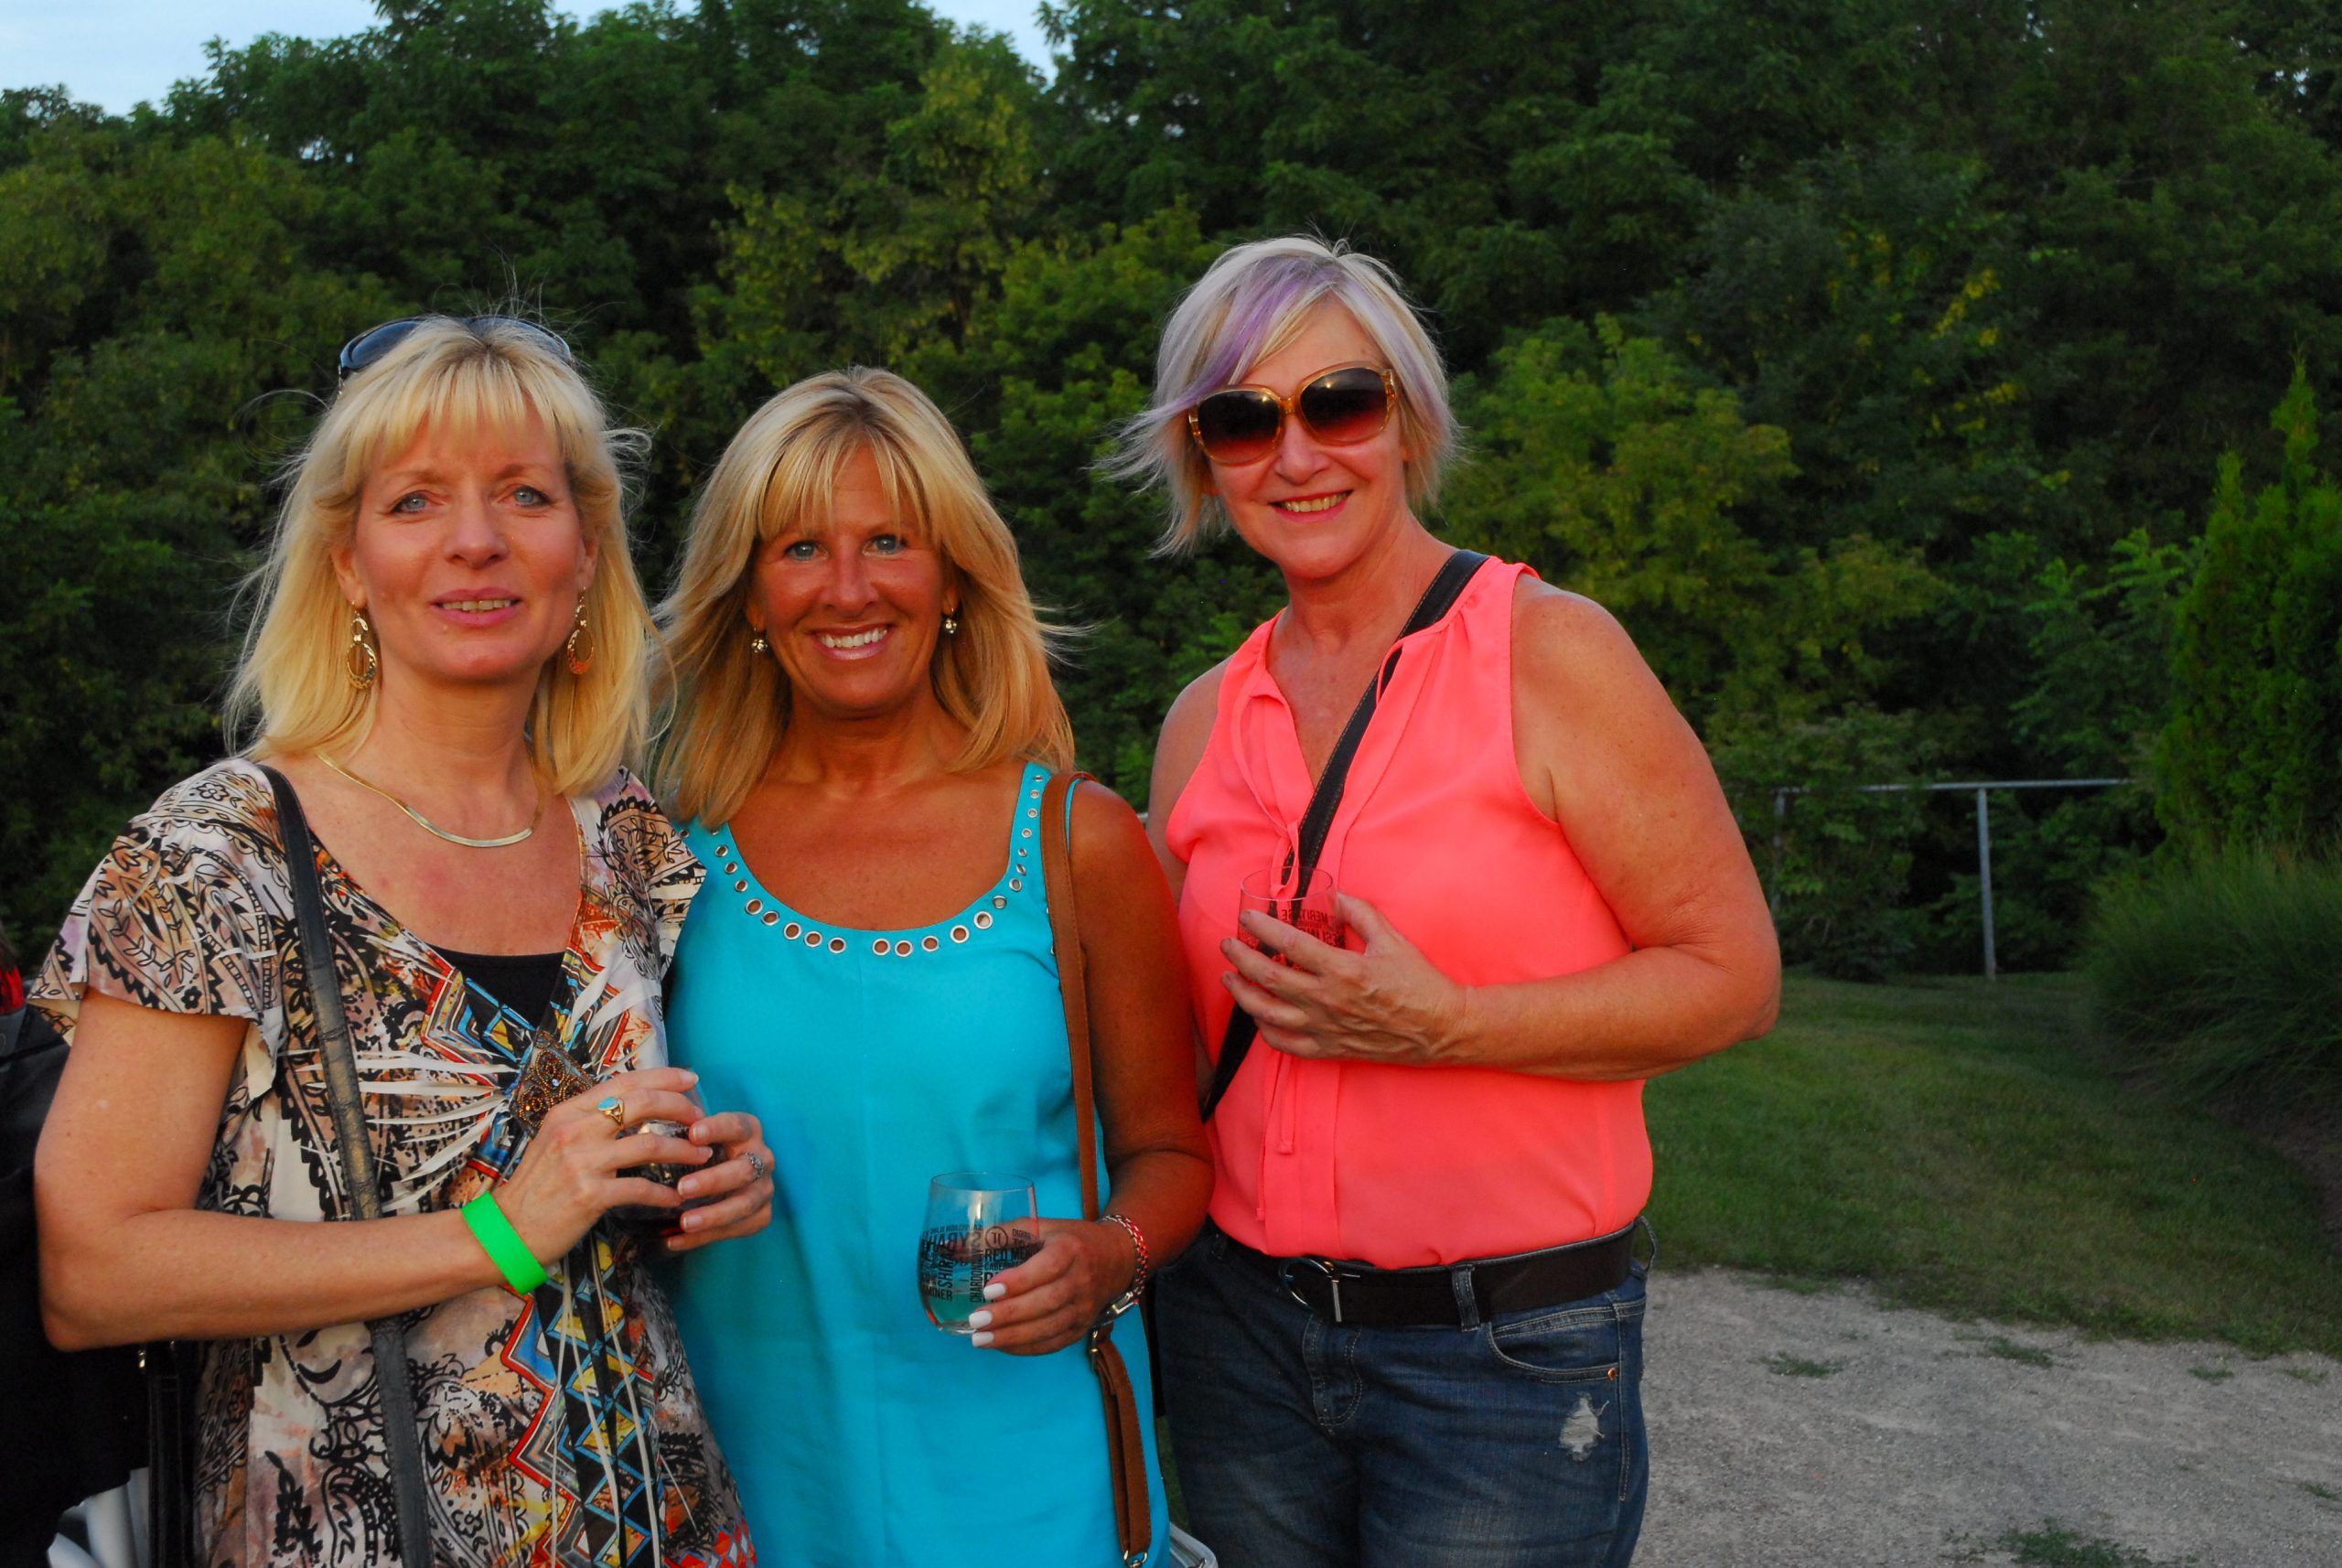 JAZZ in the VINEYARD - Jackson-Triggs Winery: July 24, 2015 - TD NJF fans enjoying the Michael Kaeshammer show (Piano & Vocals). Photo: Snapd